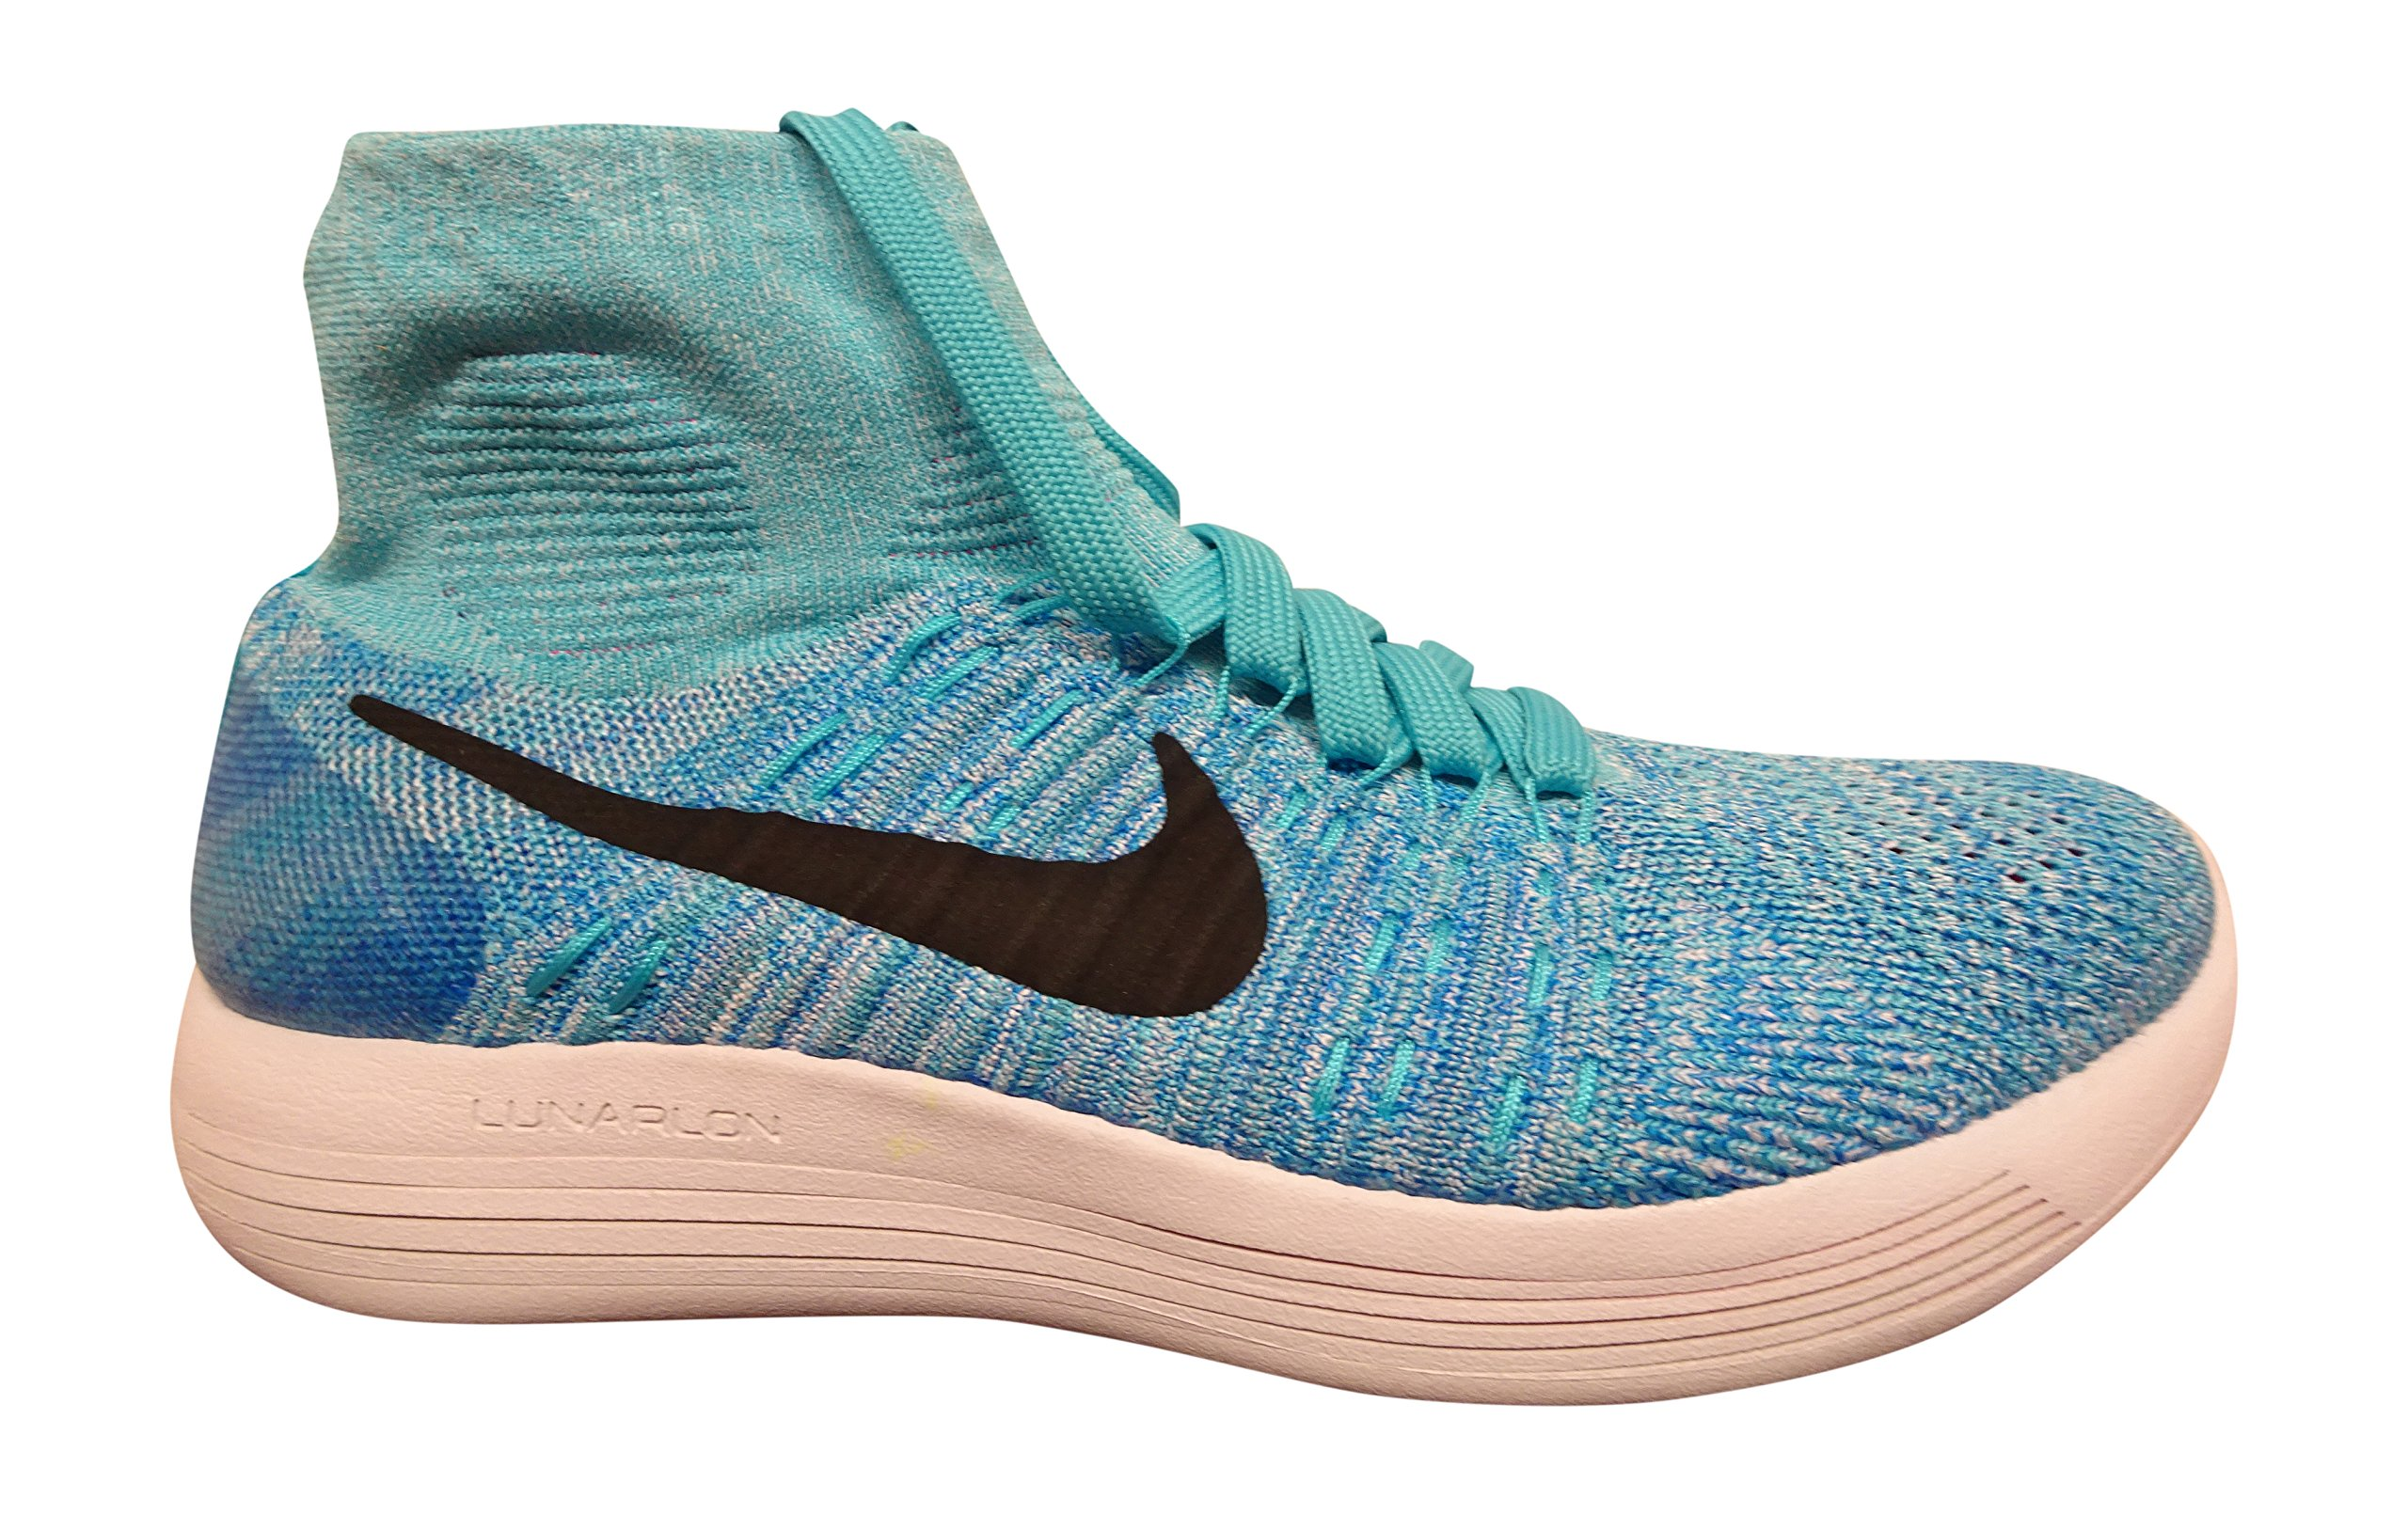 187fae2b0a965 Galleon - Nike Womens Lunarepic Flyknit Running Trainers 818677 Sneakers  Shoes (US 7.5